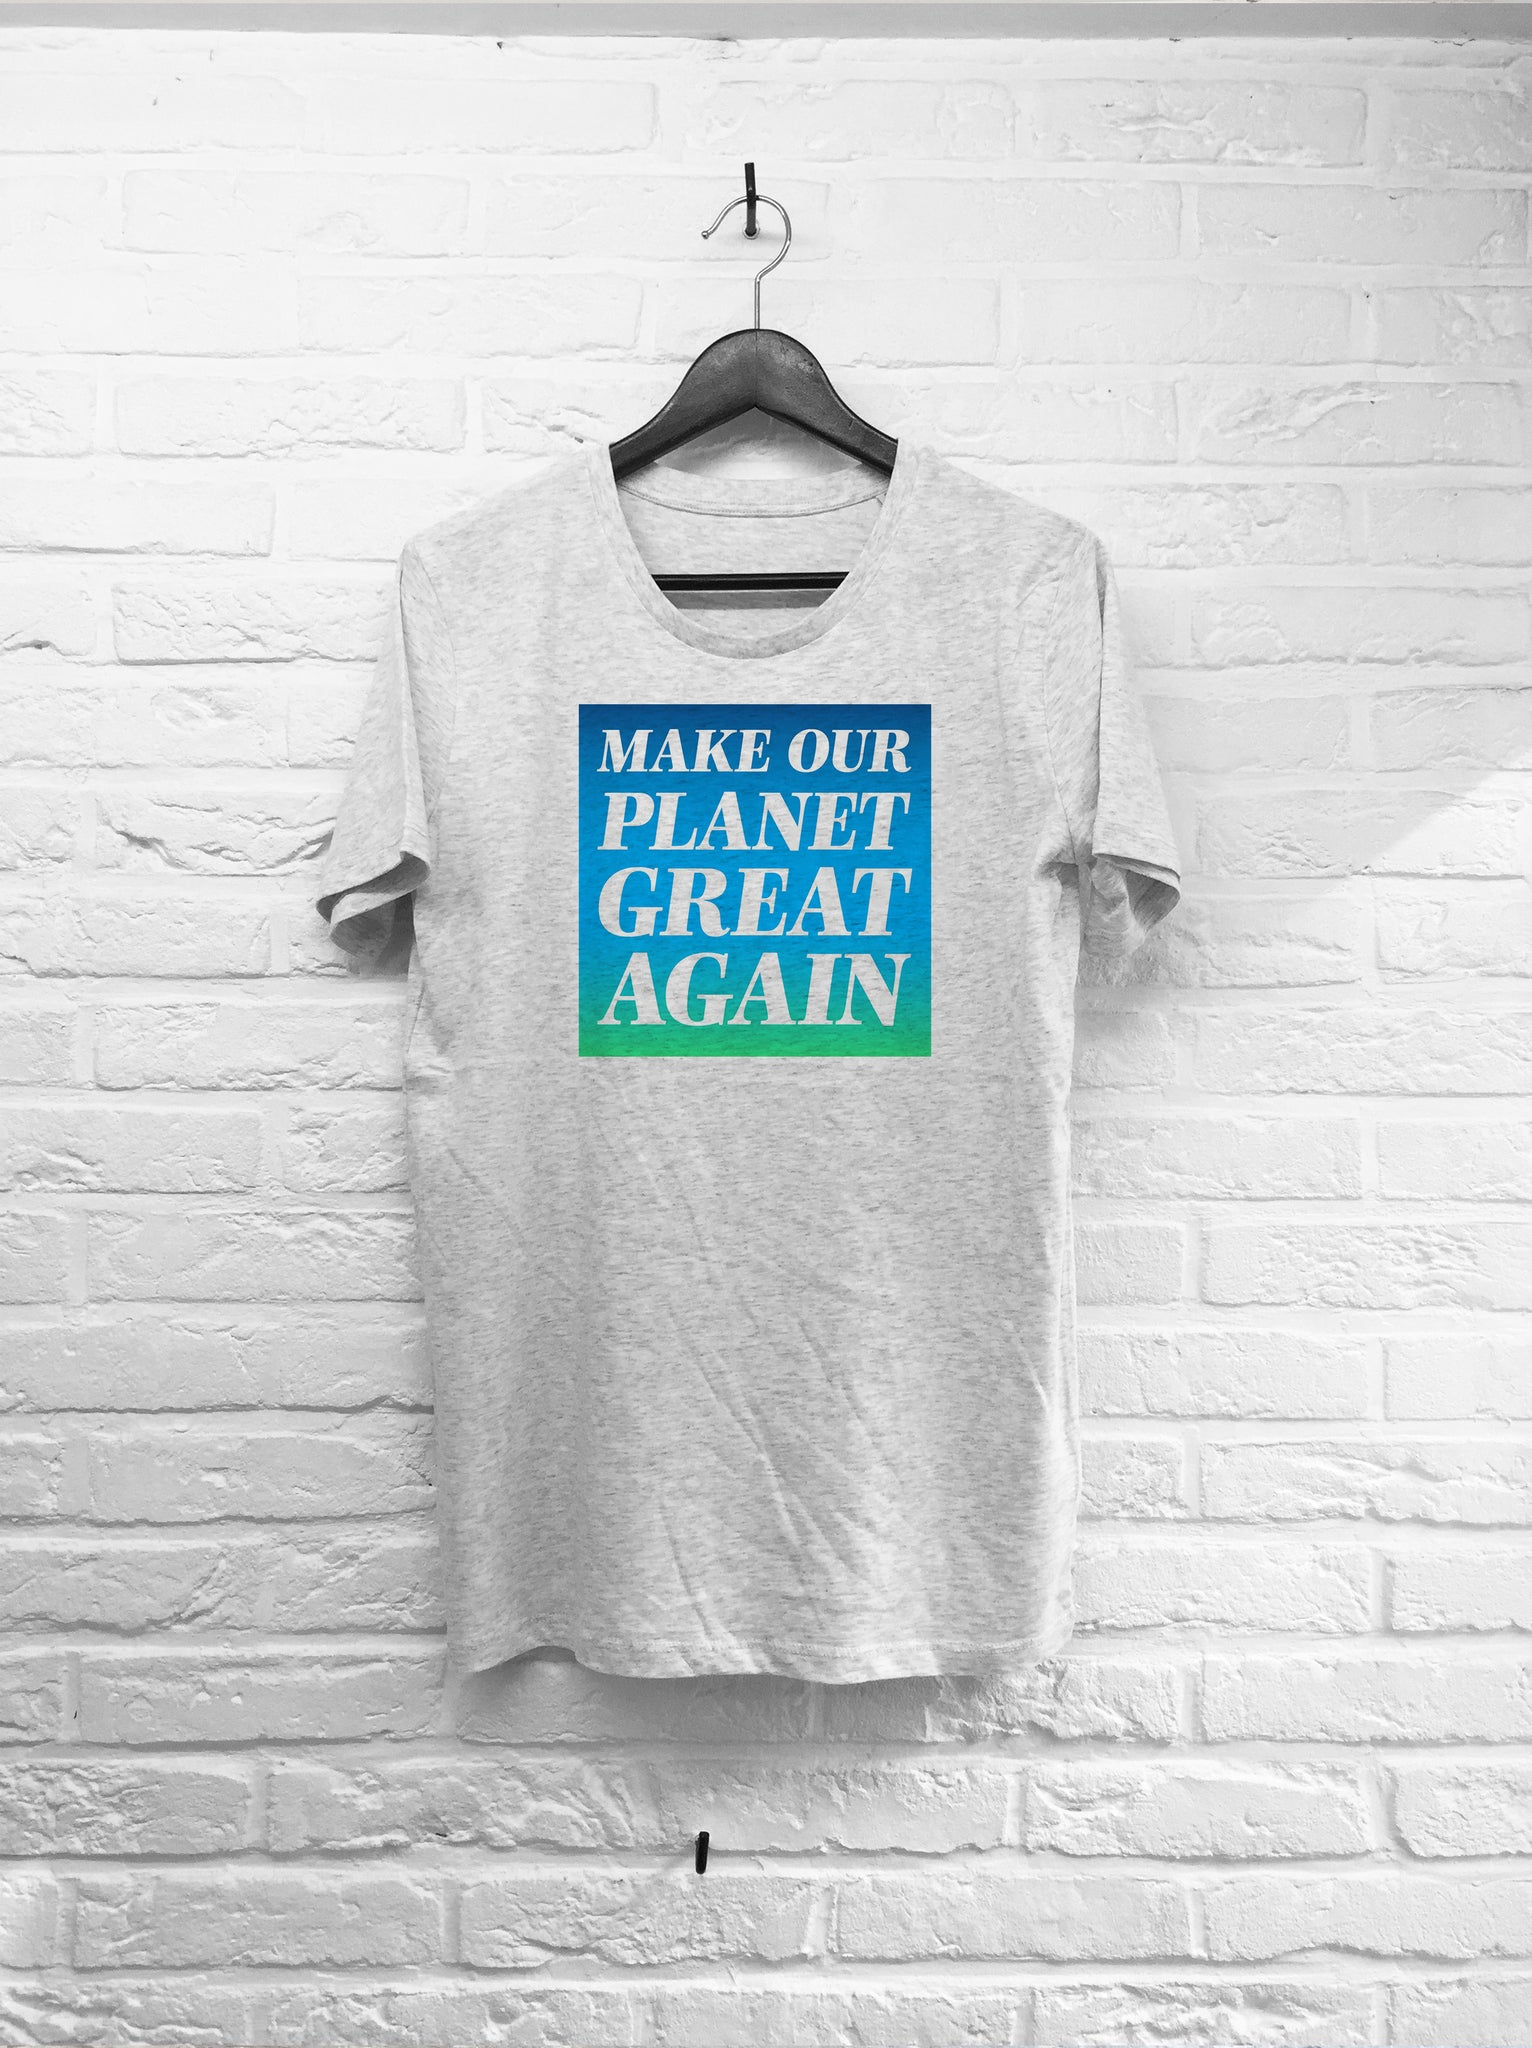 Make our planet great again-T shirt-Atelier Amelot